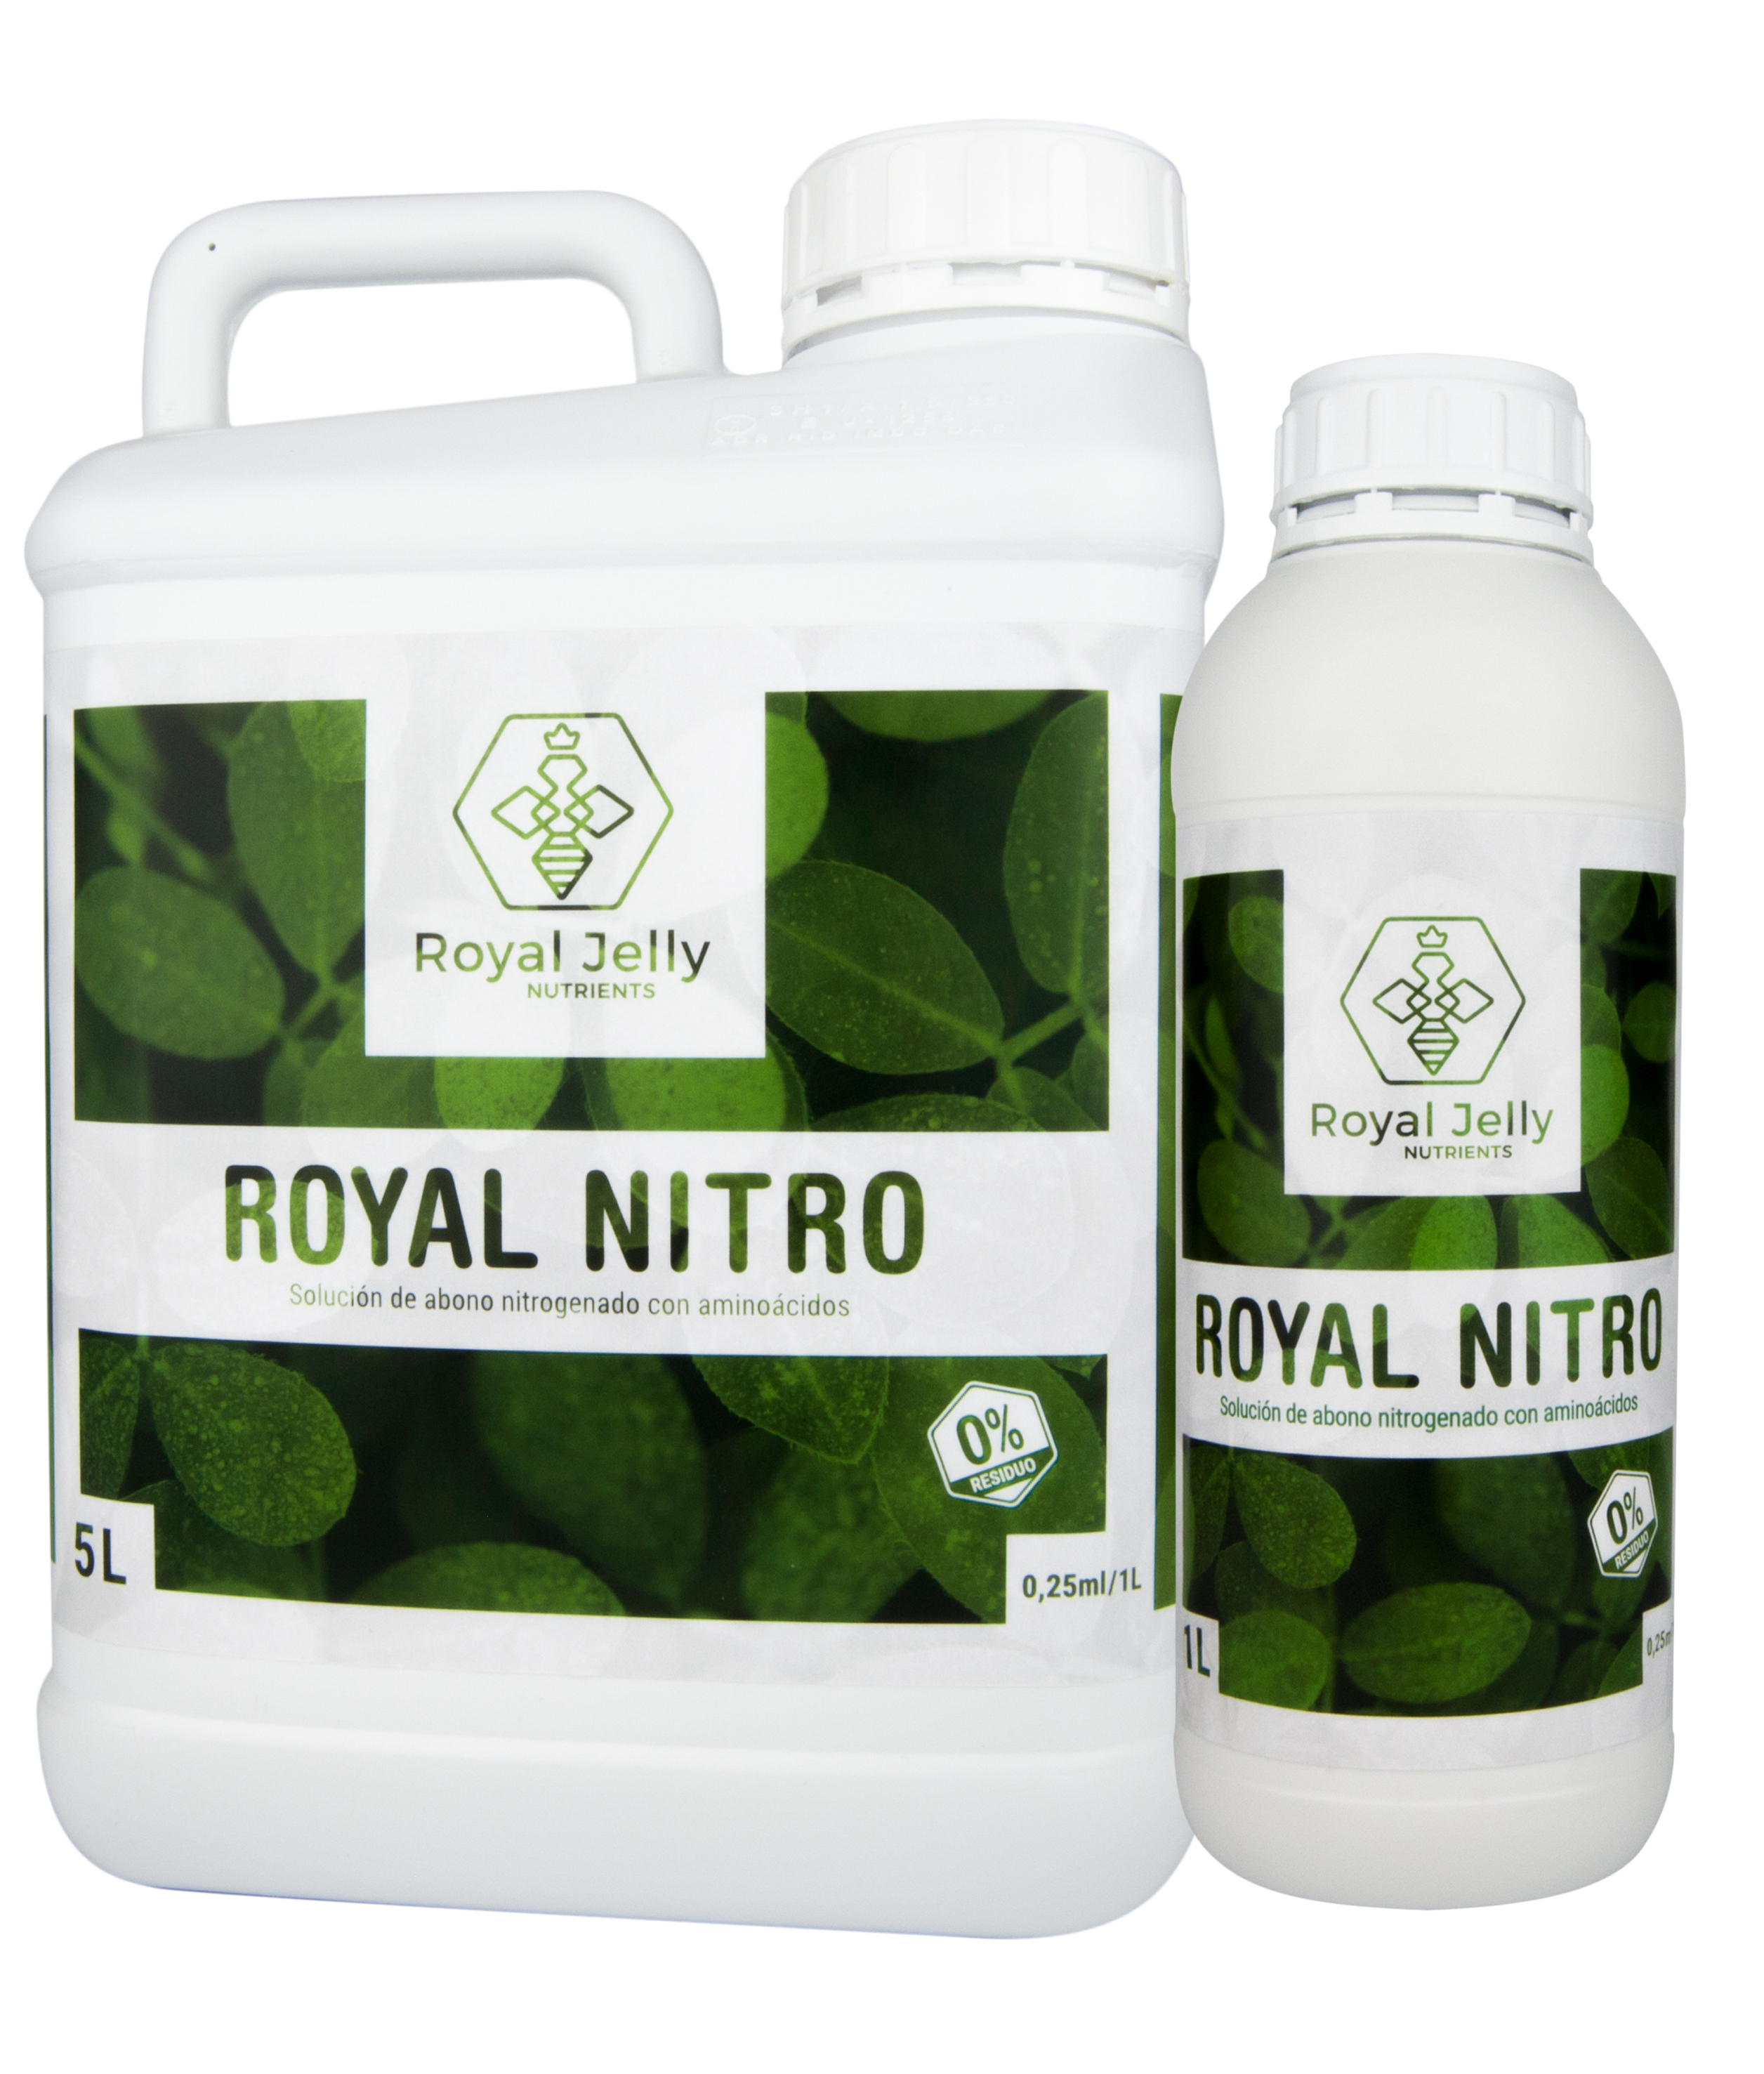 royal nitro bodegó